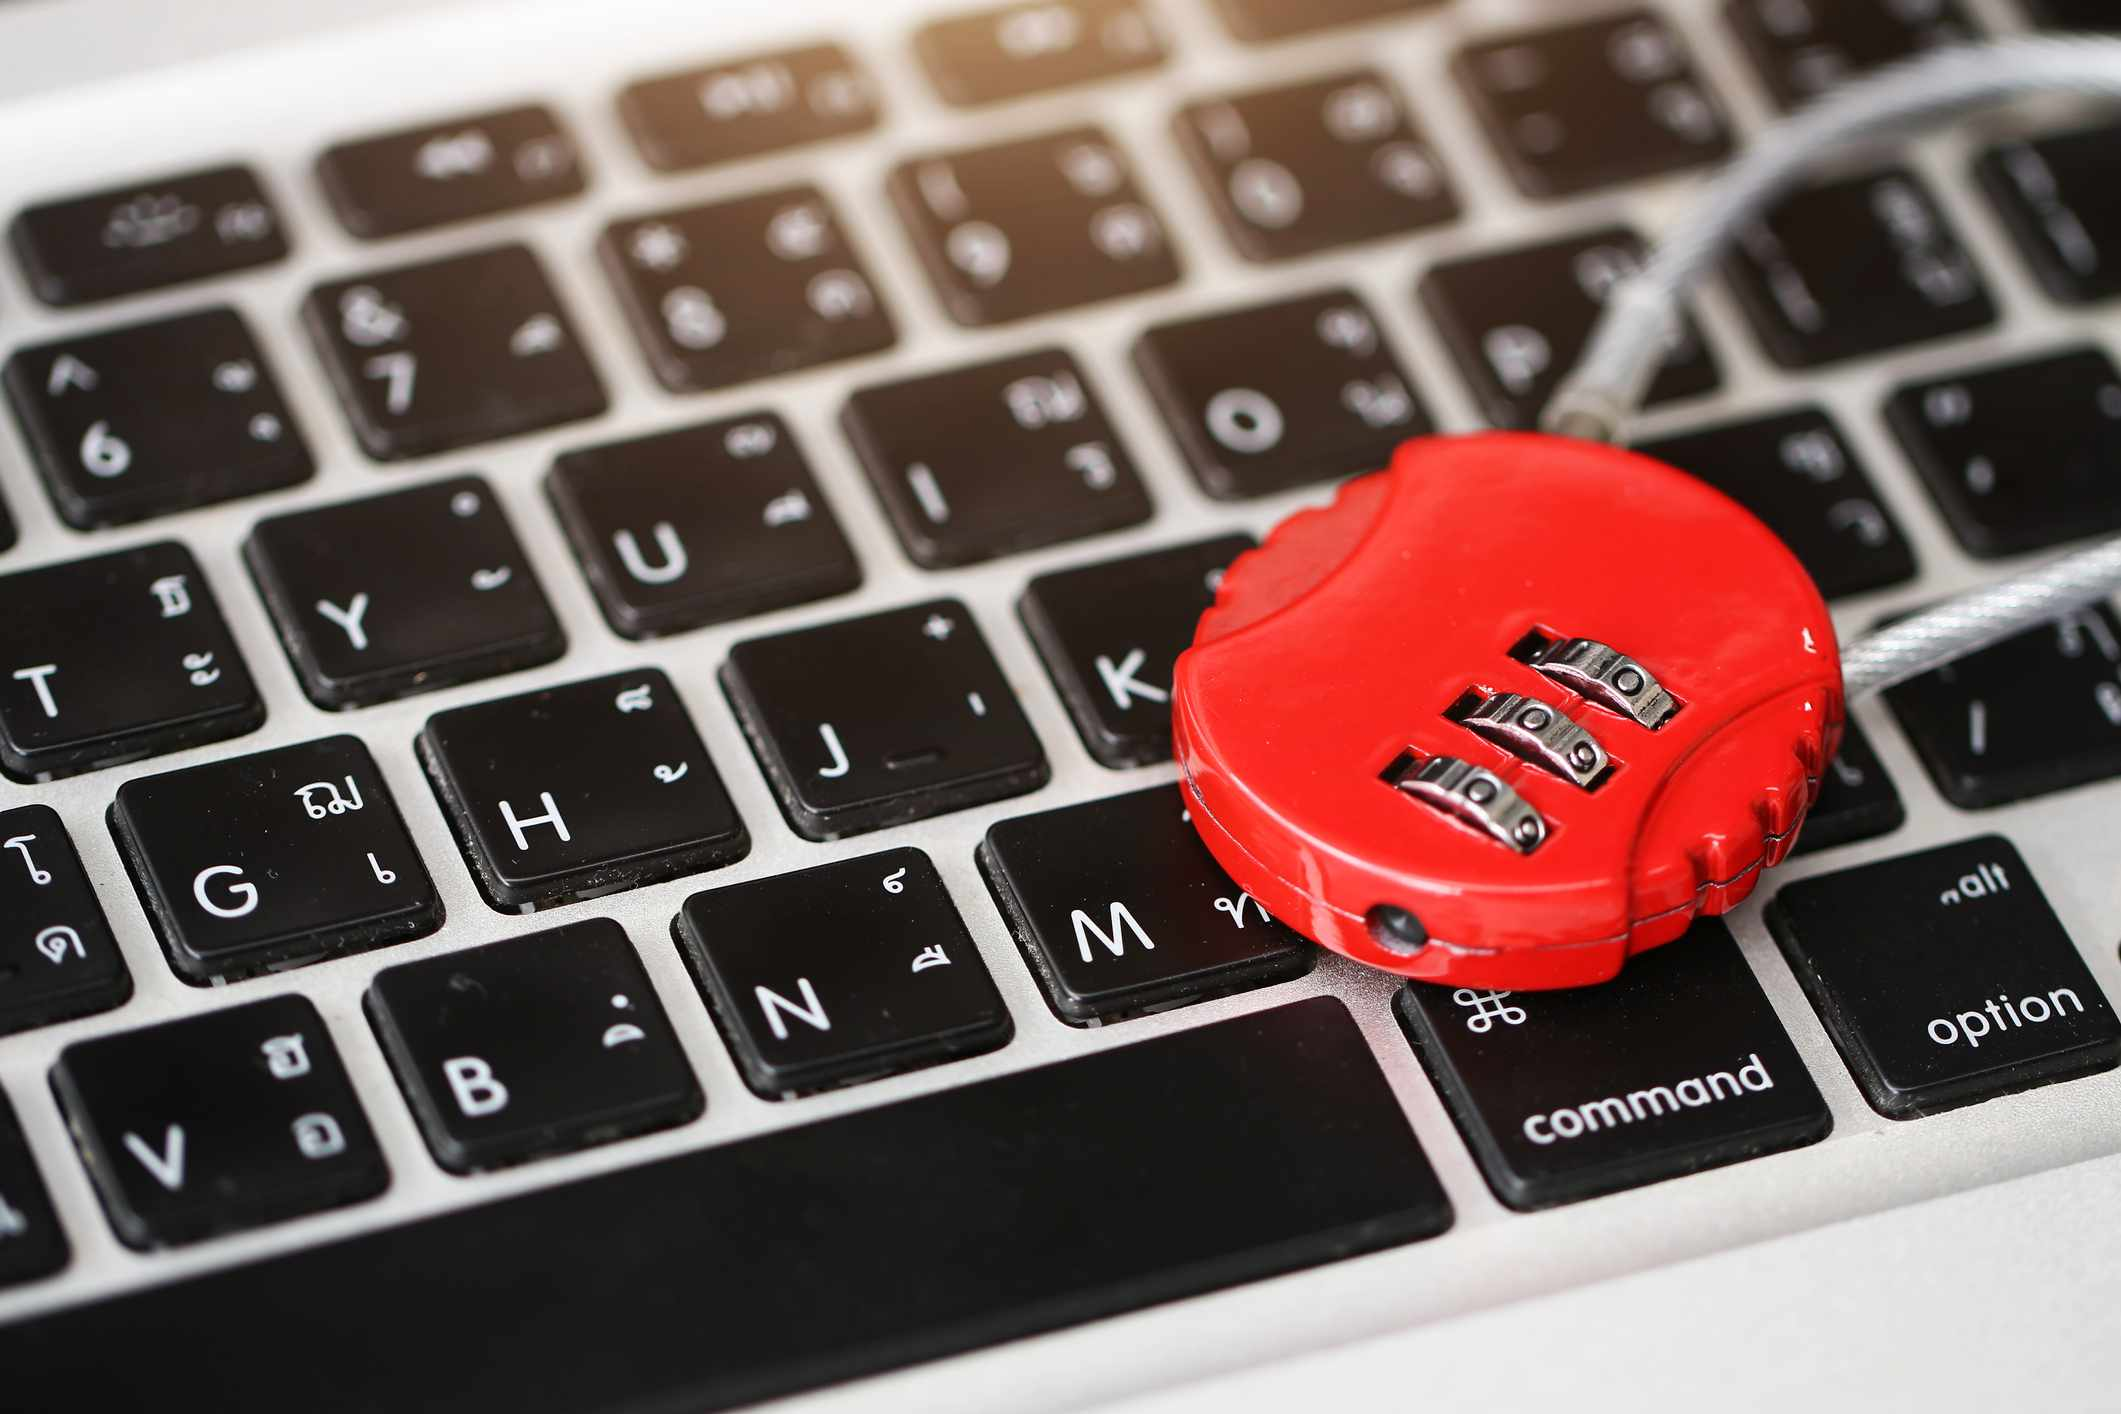 A lock on top of a laptop keyboard.